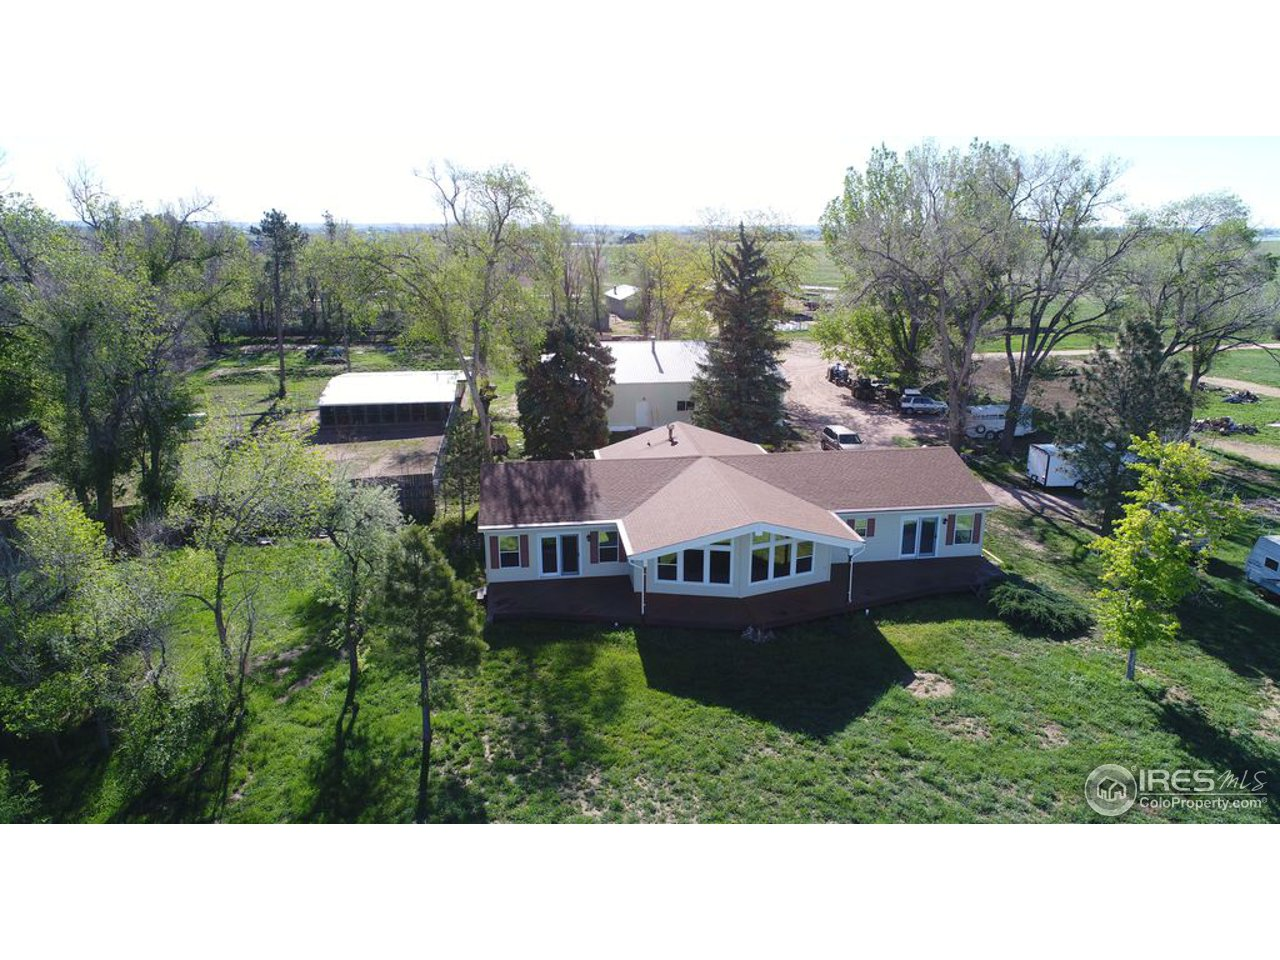 9330 N County Road 15, Fort Collins CO 80524